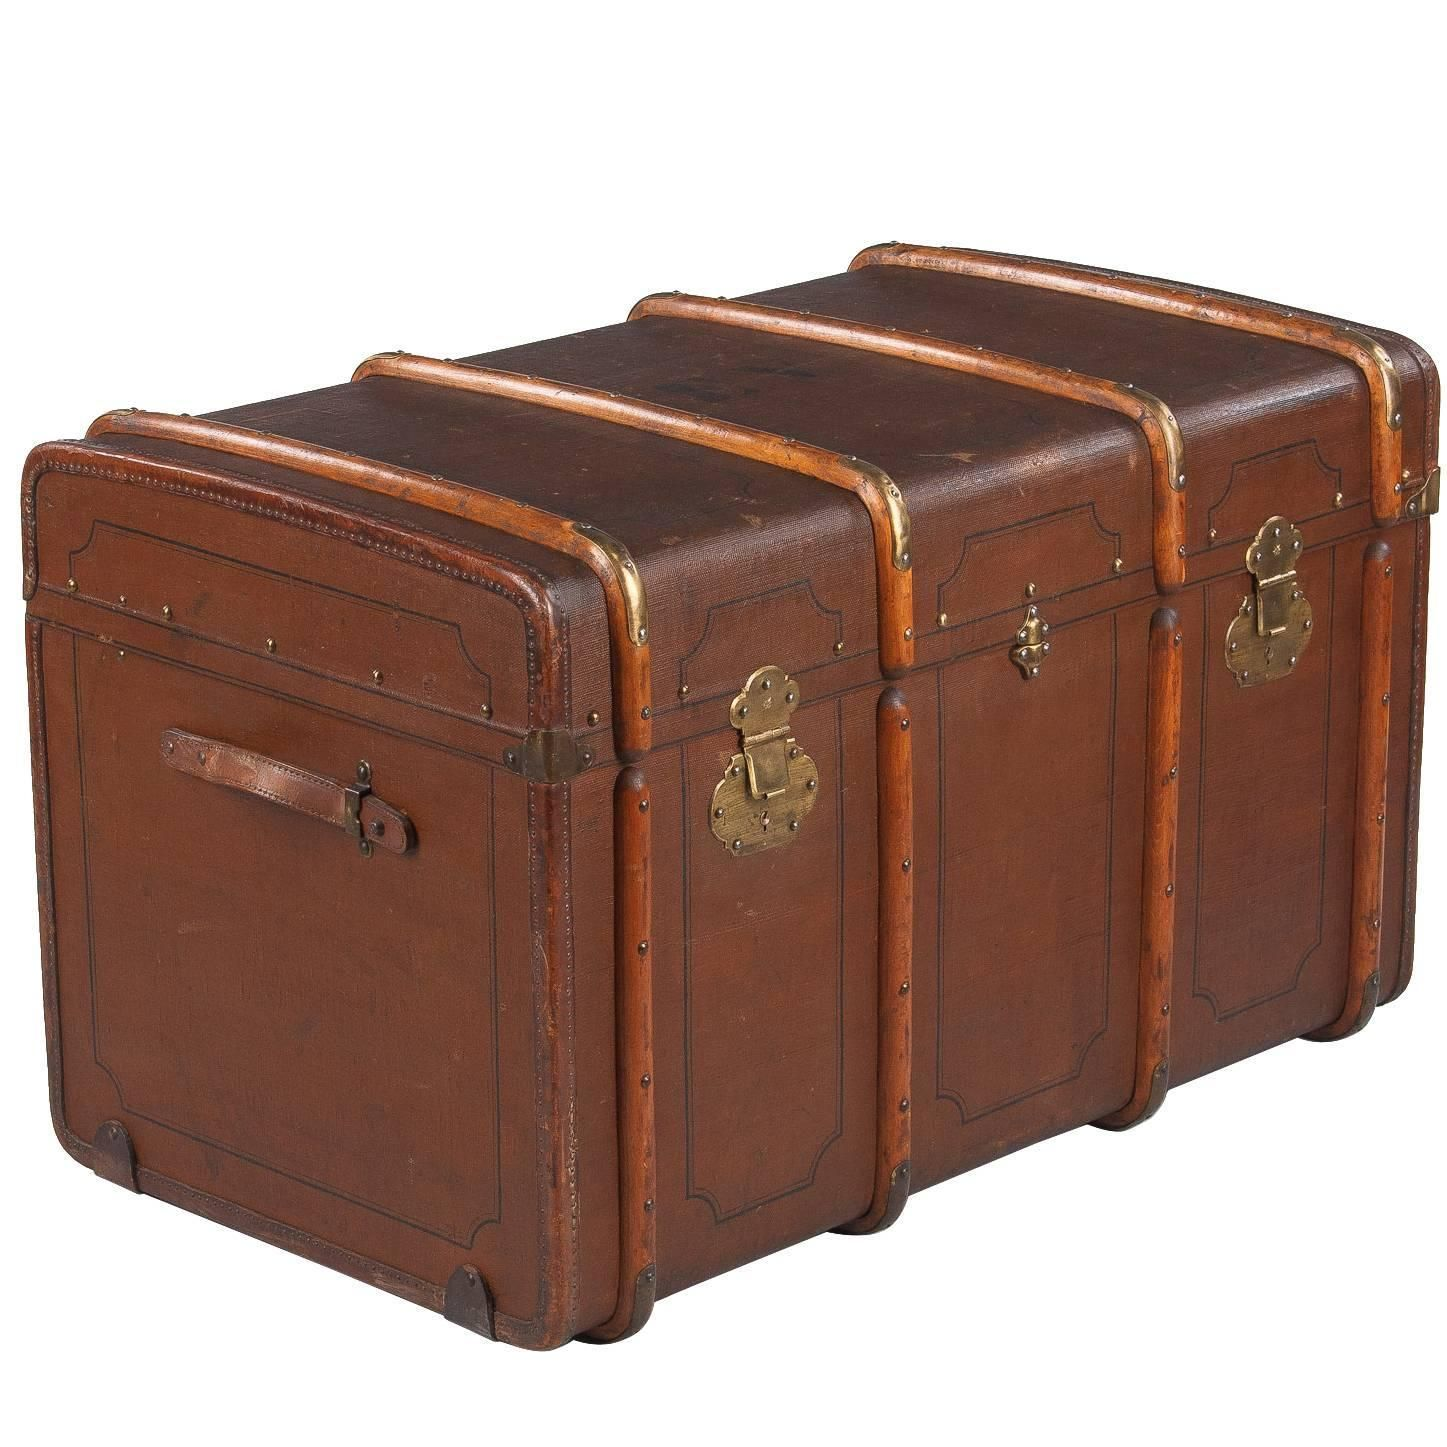 French Traveling Steamer Trunk, Early 1900s